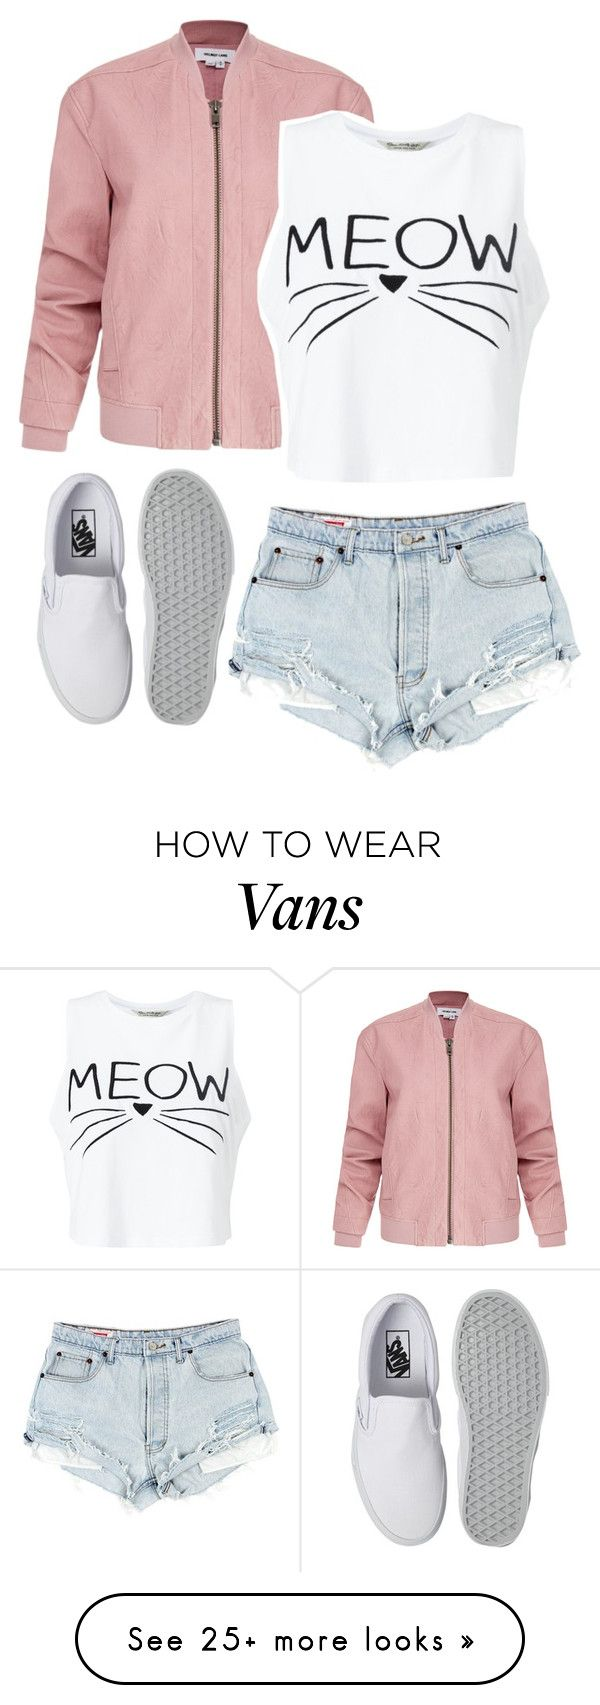 """Untitled #222"" by dianav8 on Polyvore featuring Helmut Lang, Miss Selfridge and Vans"